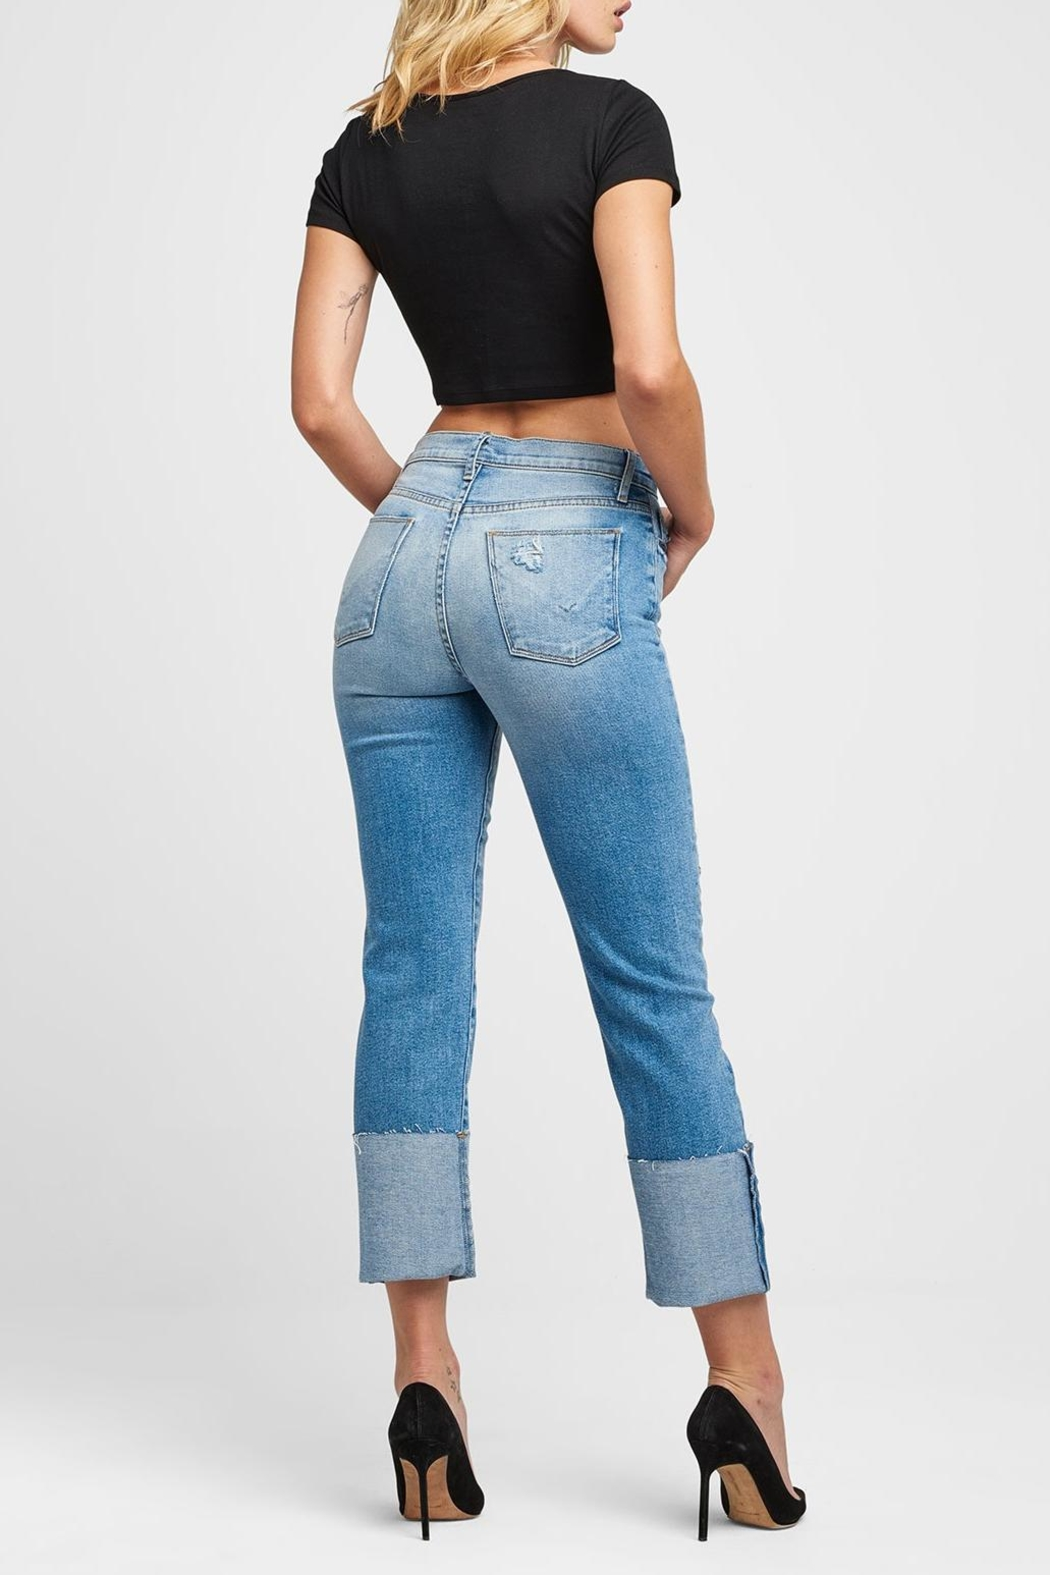 Hudson Jeans Zoeey Stright Jeans - Side Cropped Image